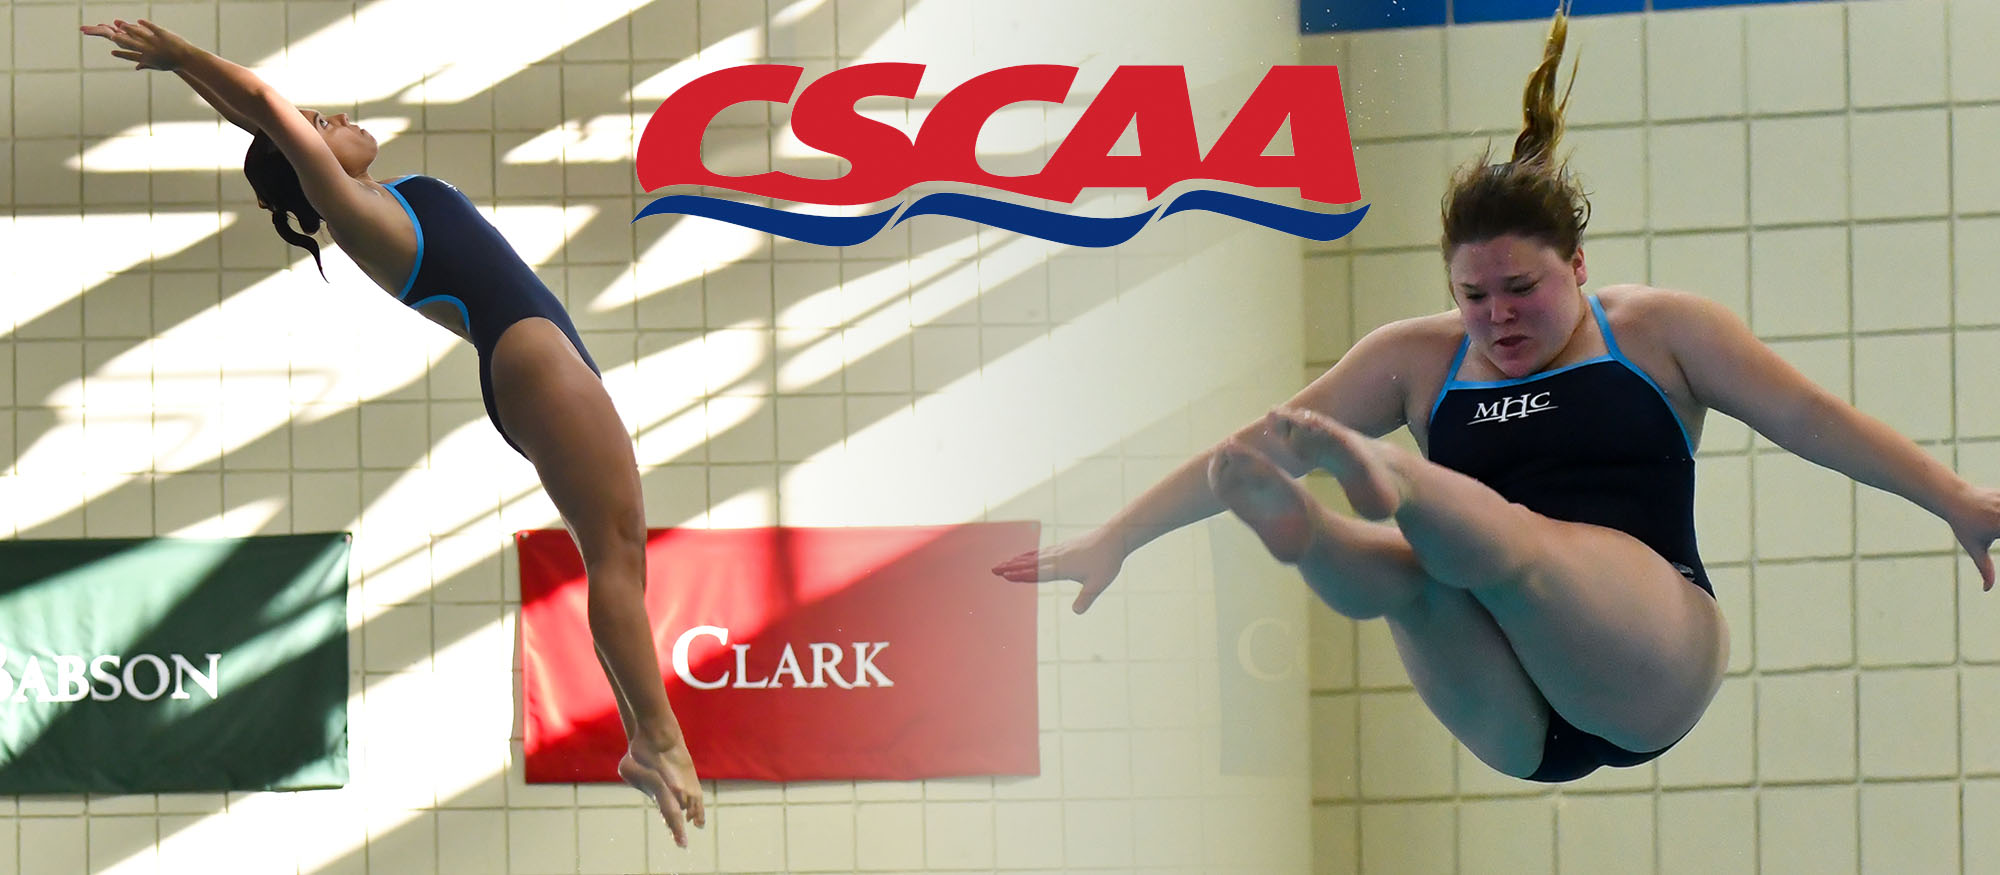 Nemivant and Kolozsvari of Swimming and Diving Selected to CSCAA Honorable Mention Scholar All-America Team